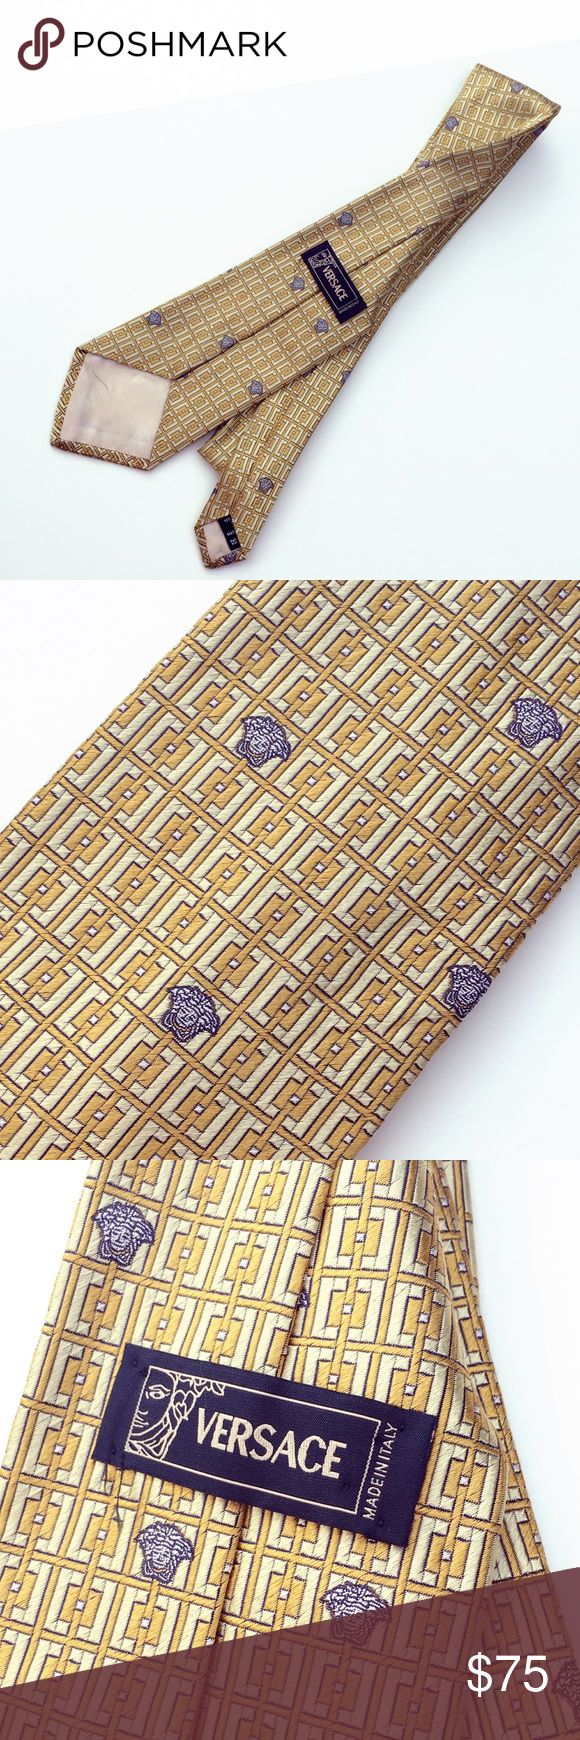 NWOT authentic Versace men's tie Versace brand and great for going to work/formal events/parties! Never used! Versace Accessories Ties